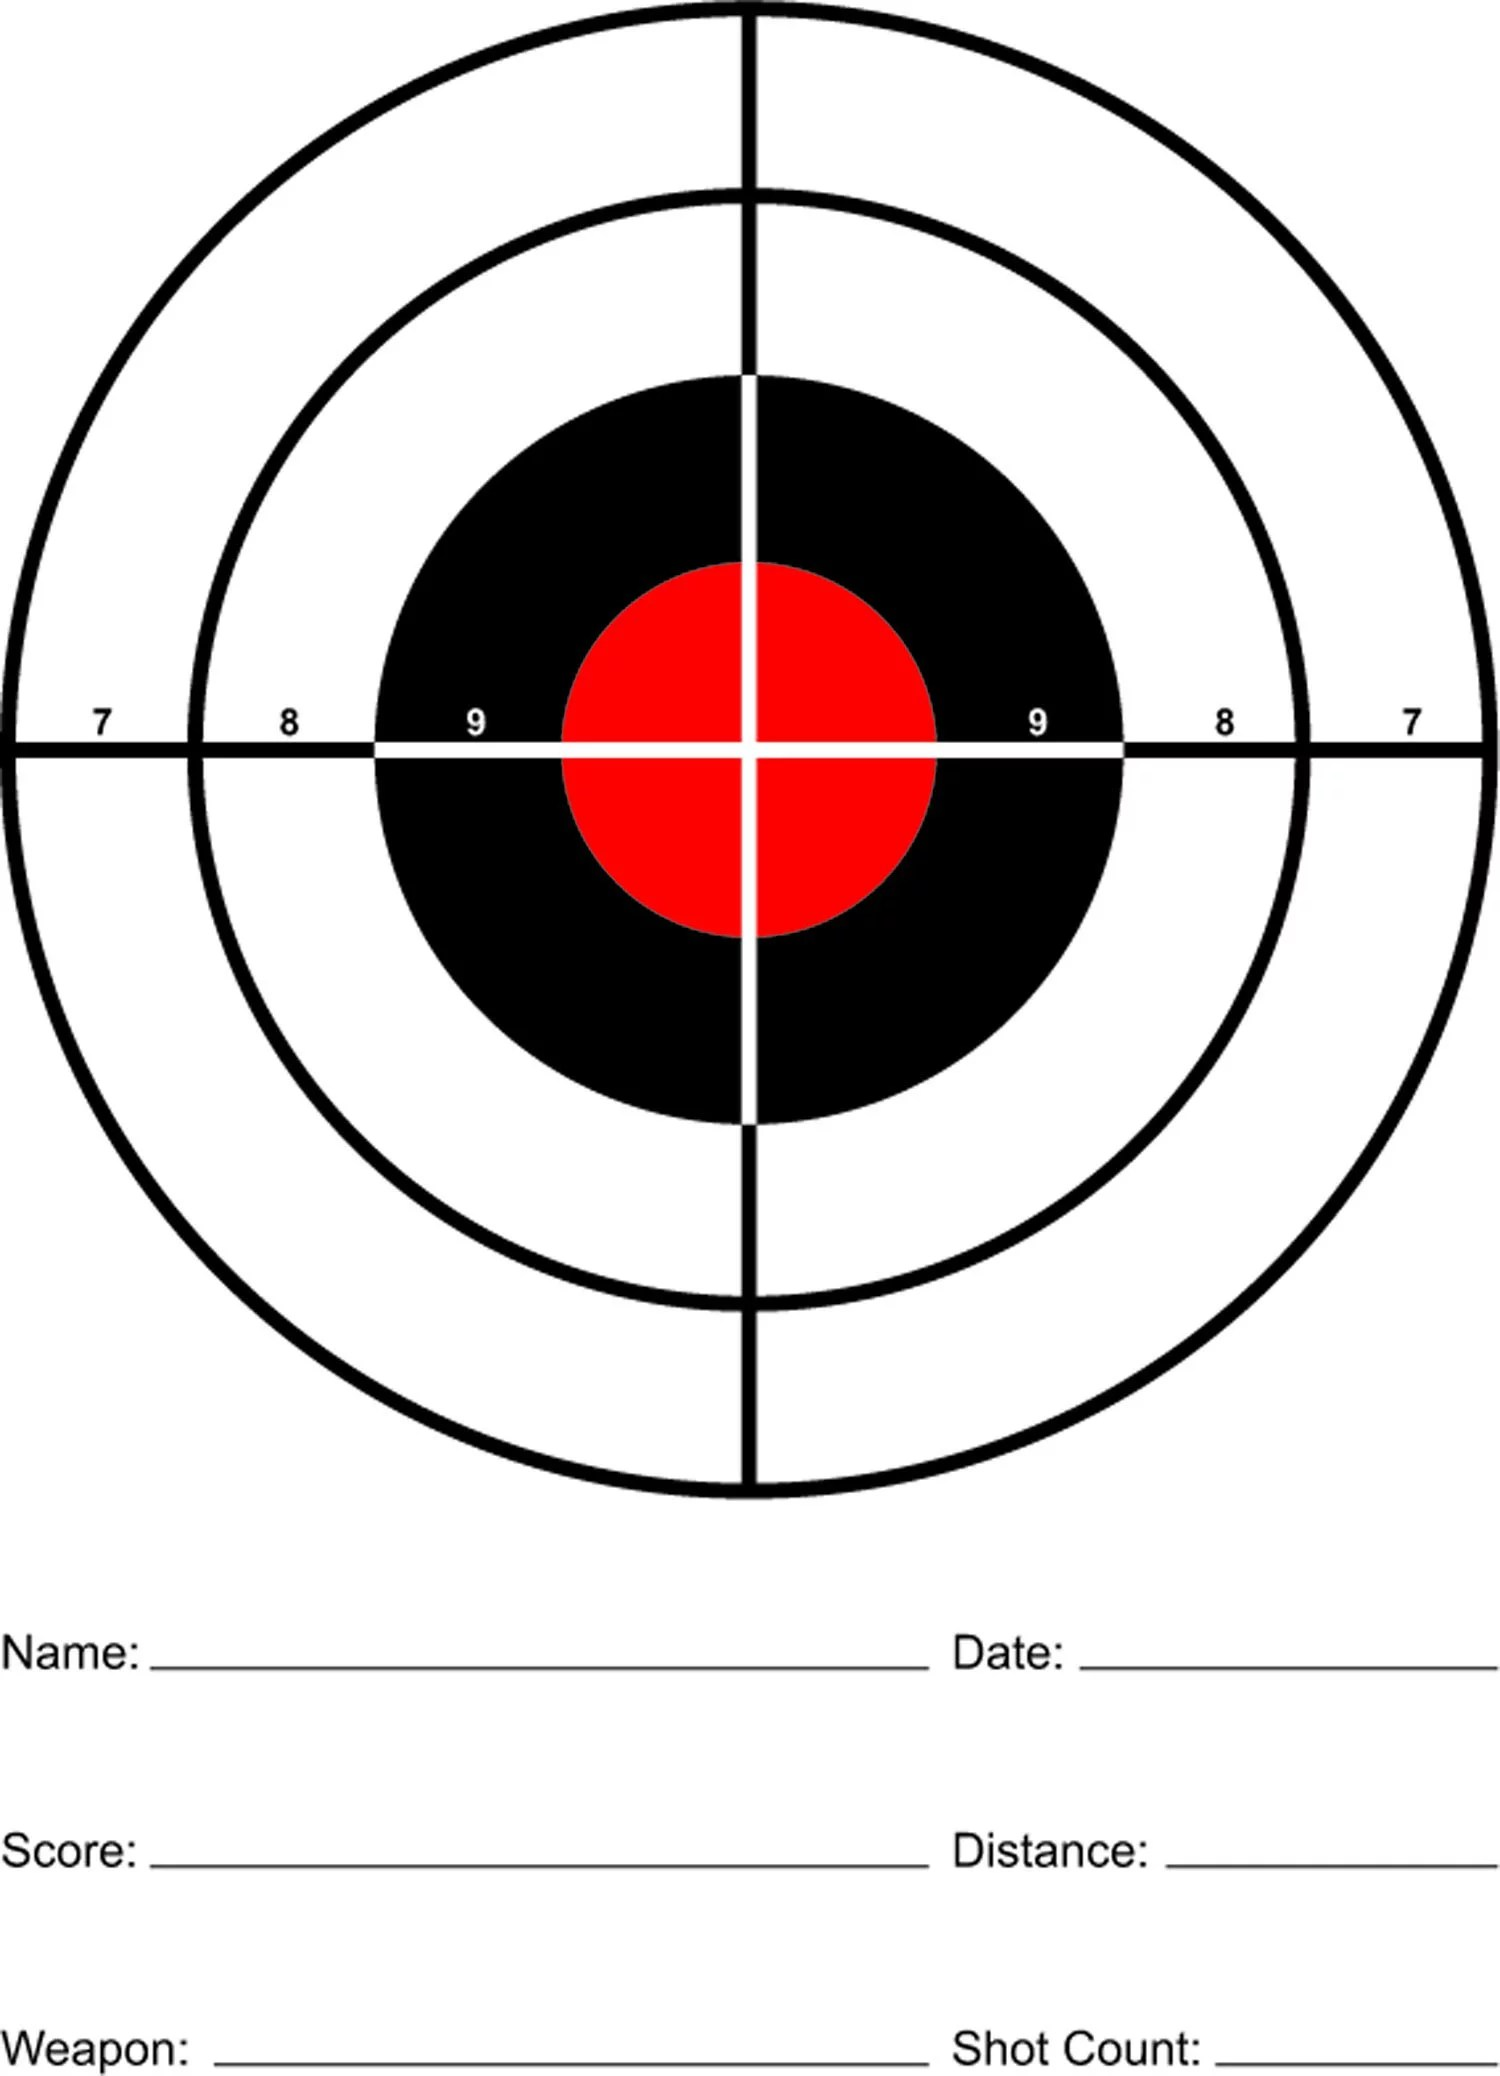 Red Sight In Paper Rifle And Pistol Shooting Targets